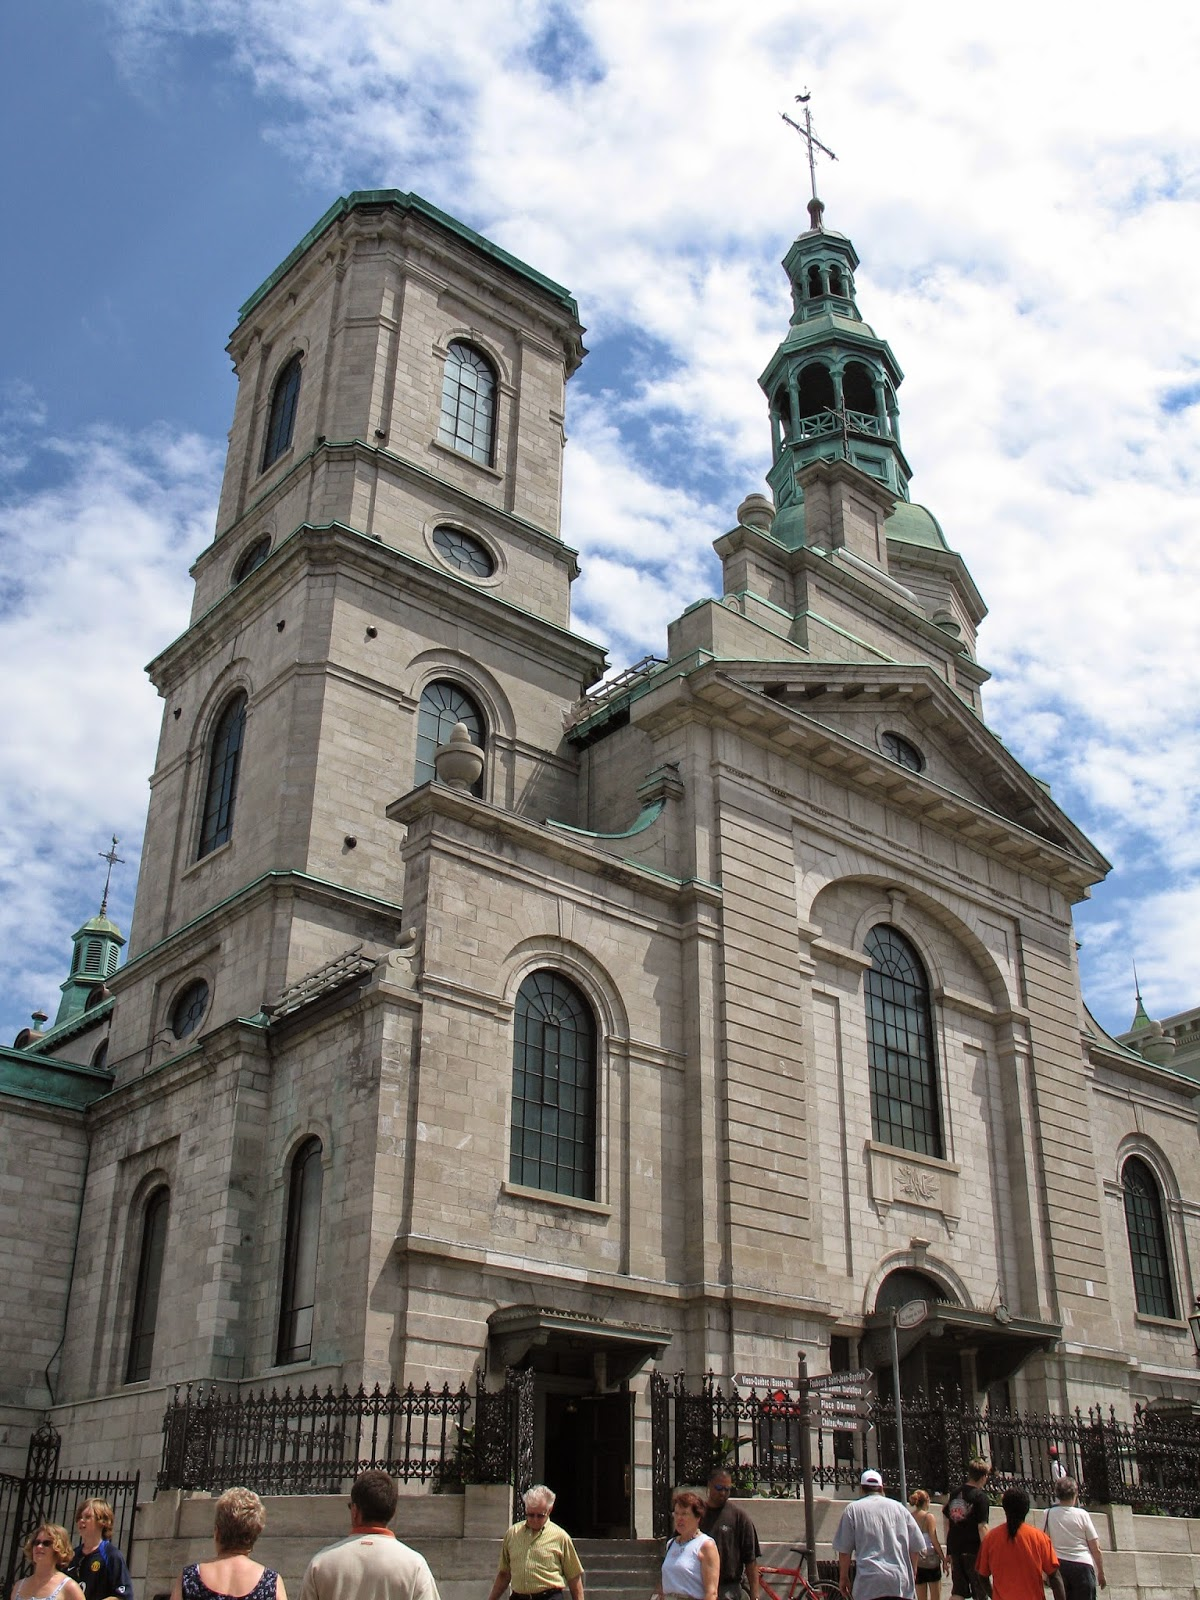 """""""<a href=""""http://commons.wikimedia.org/wiki/File:Basilique-Cath%C3%A9drale_Notre-Dame_Qu%C3%A9bec.JPG#mediaviewer/File:Basilique-Cath%C3%A9drale_Notre-Dame_Qu%C3%A9bec.JPG"""">Basilique-Cathédrale Notre-Dame Québec</a>"""". Licensed under <a href=""""http://creativecommons.org/licenses/by-sa/3.0/"""" title=""""Creative Commons Attribution-Share Alike 3.0"""">CC BY-SA 3.0</a> via <a href=""""//commons.wikimedia.org/wiki/"""">Wikimedia Commons</a>."""